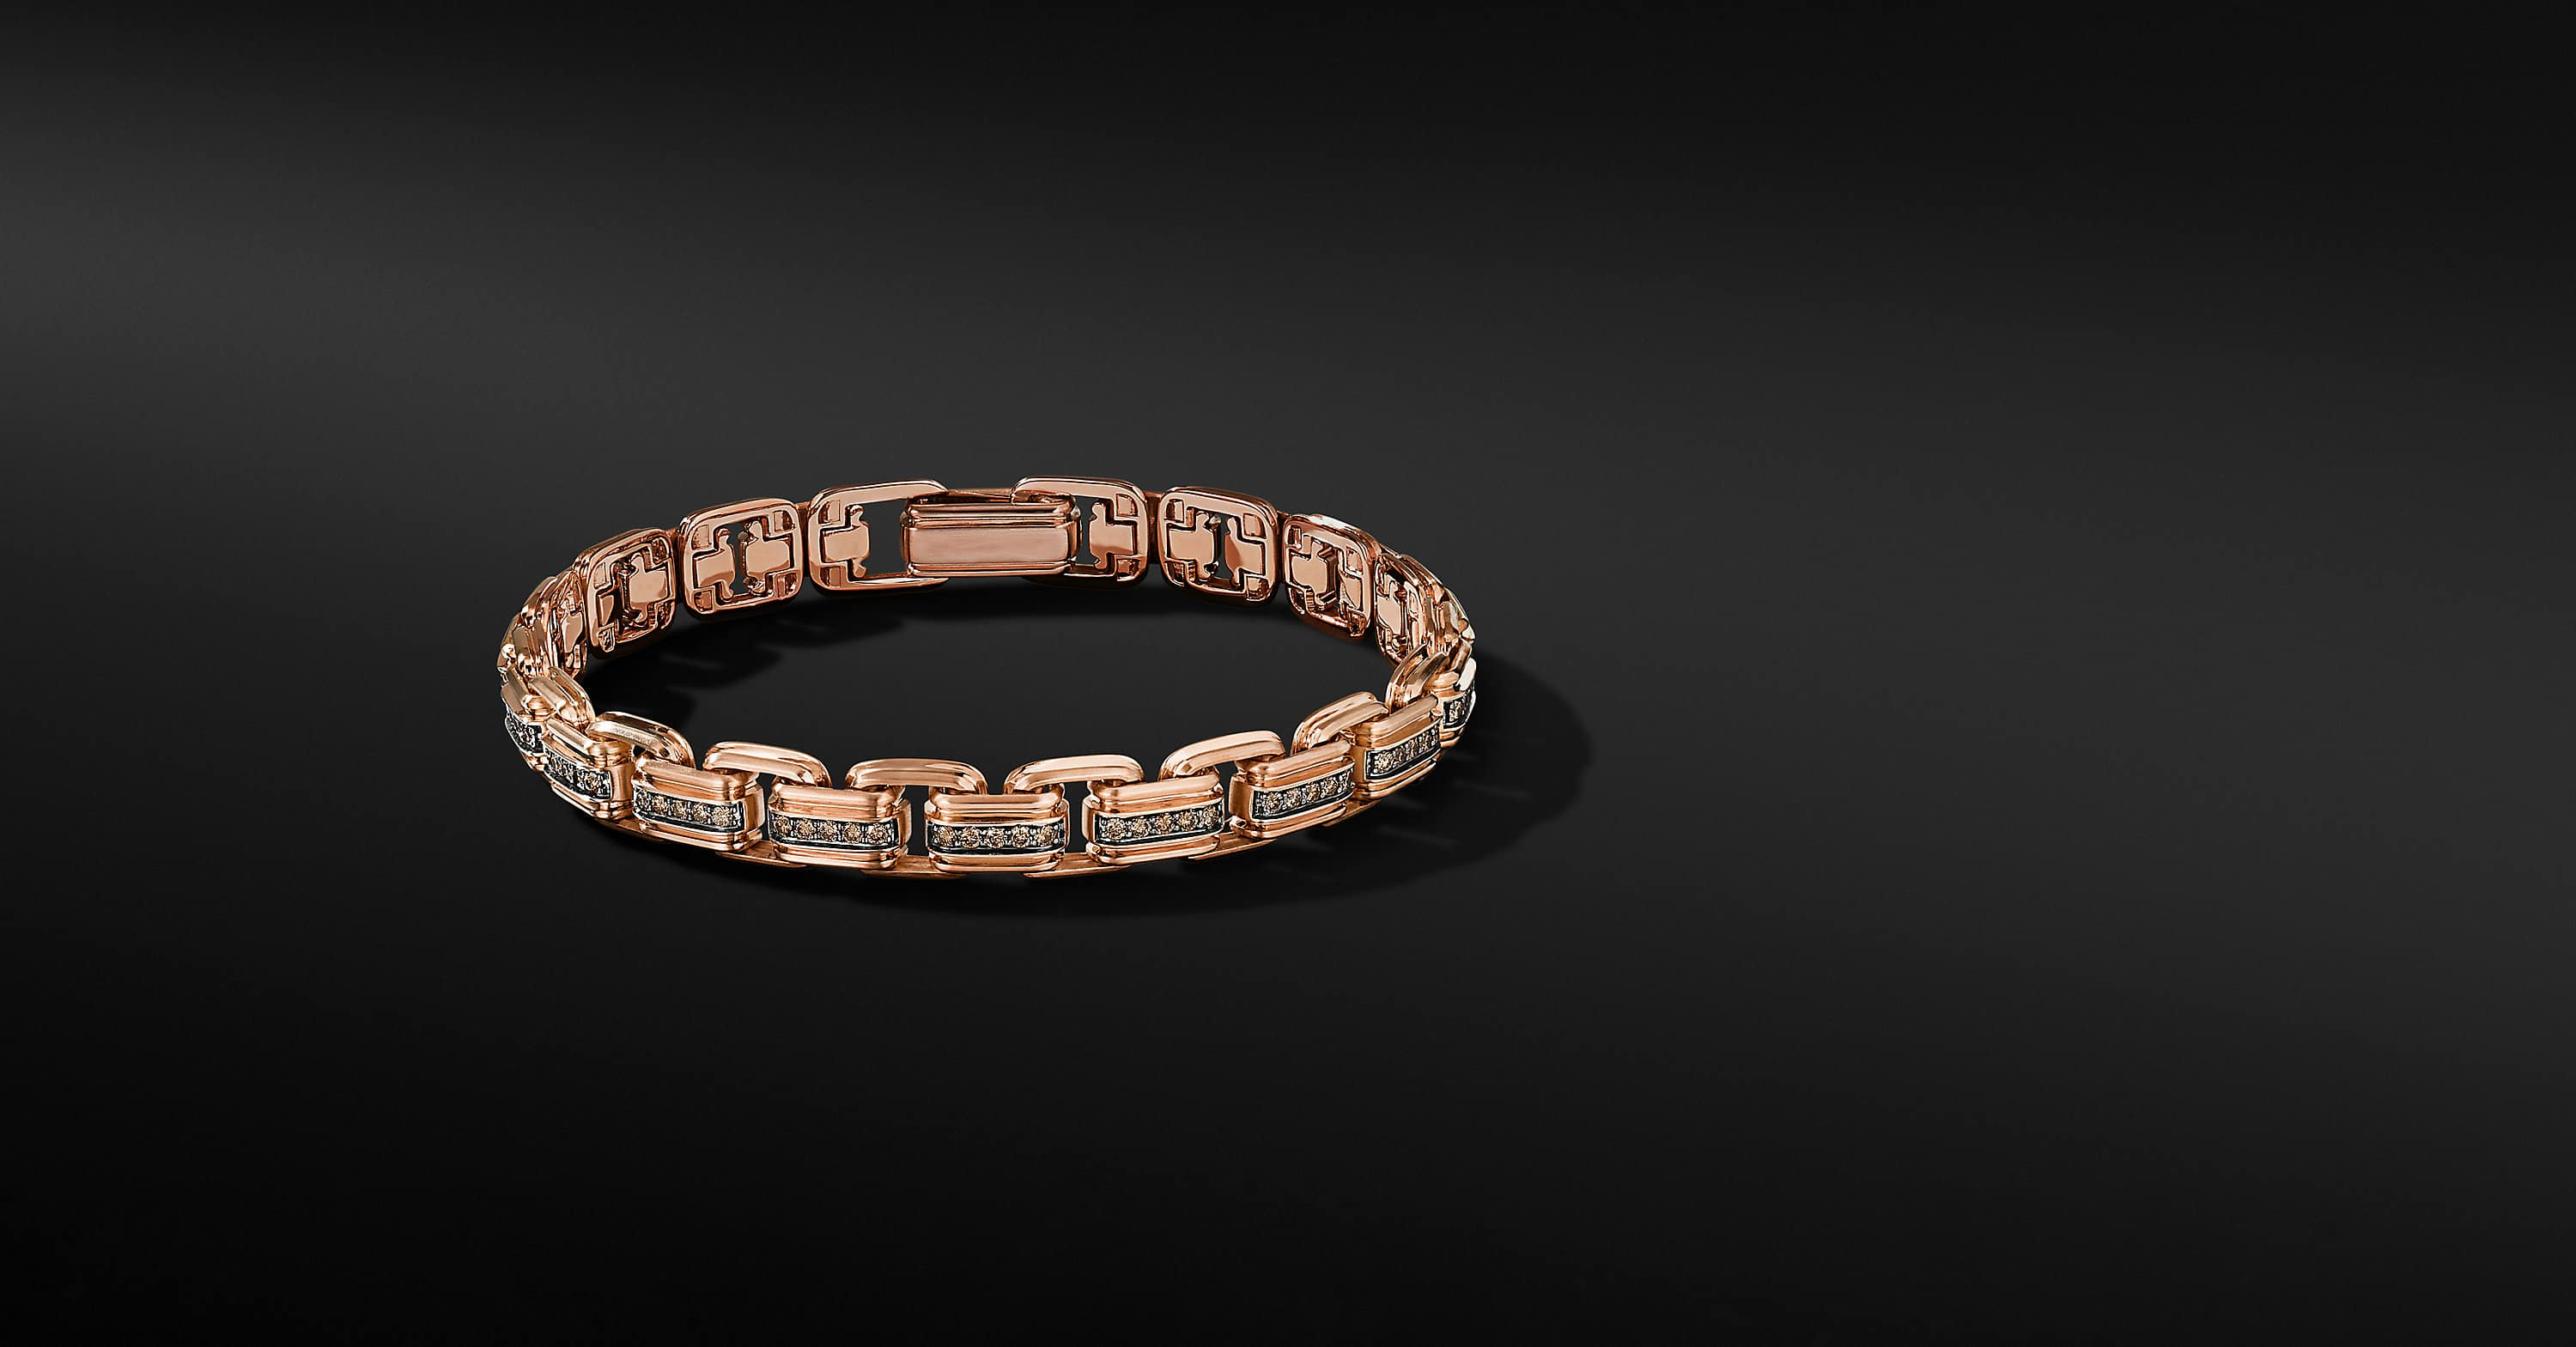 Deco Chain Link Bracelet in 18K Rose Gold